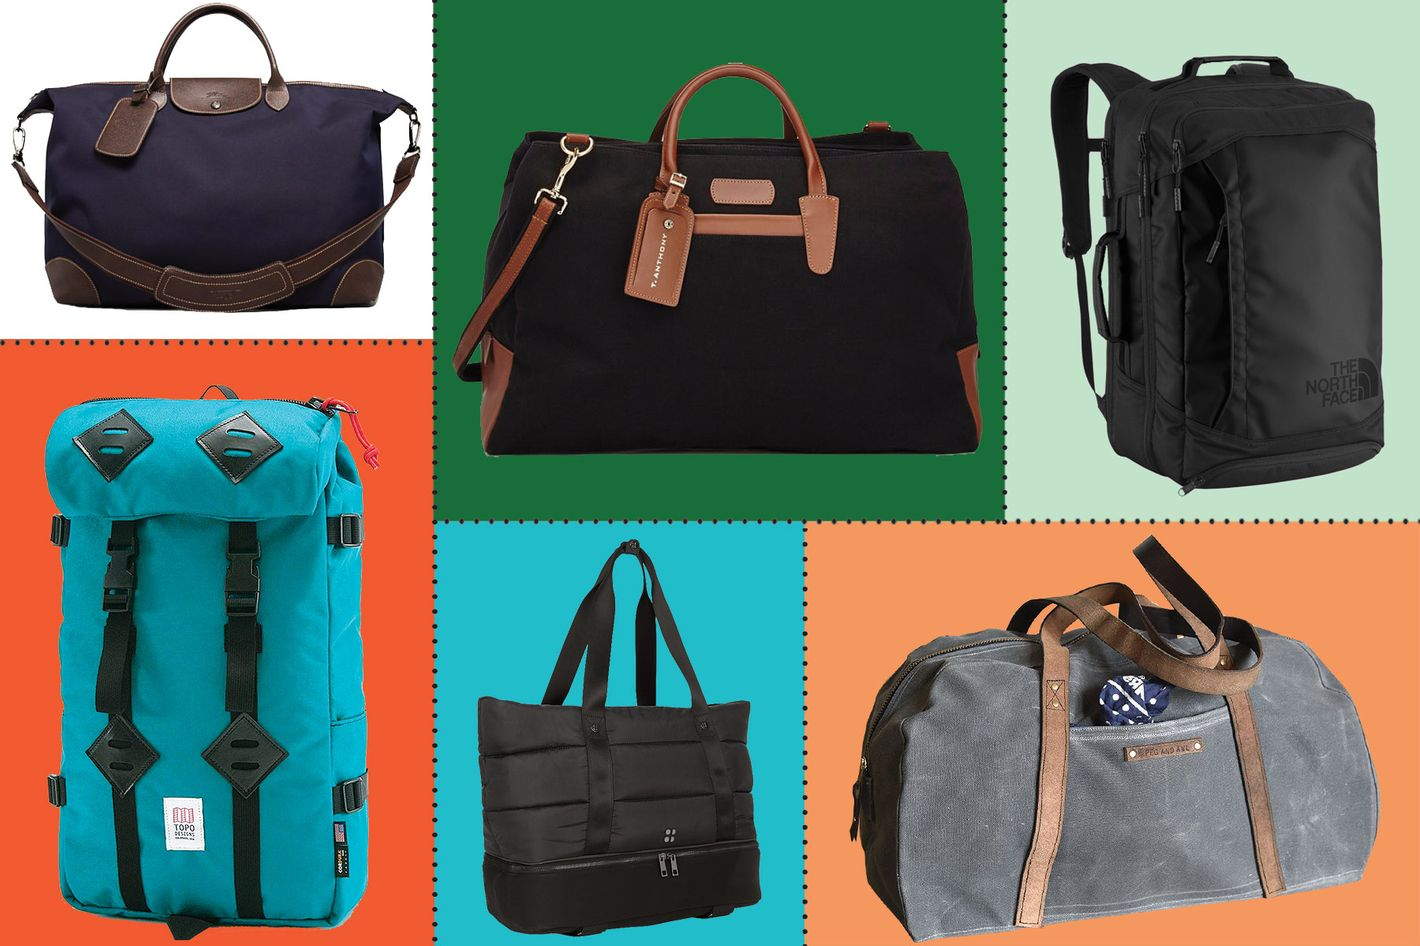 5ce4c0e223e4 New York mens travel bag images 13 weekend travel bags for men and women jpg